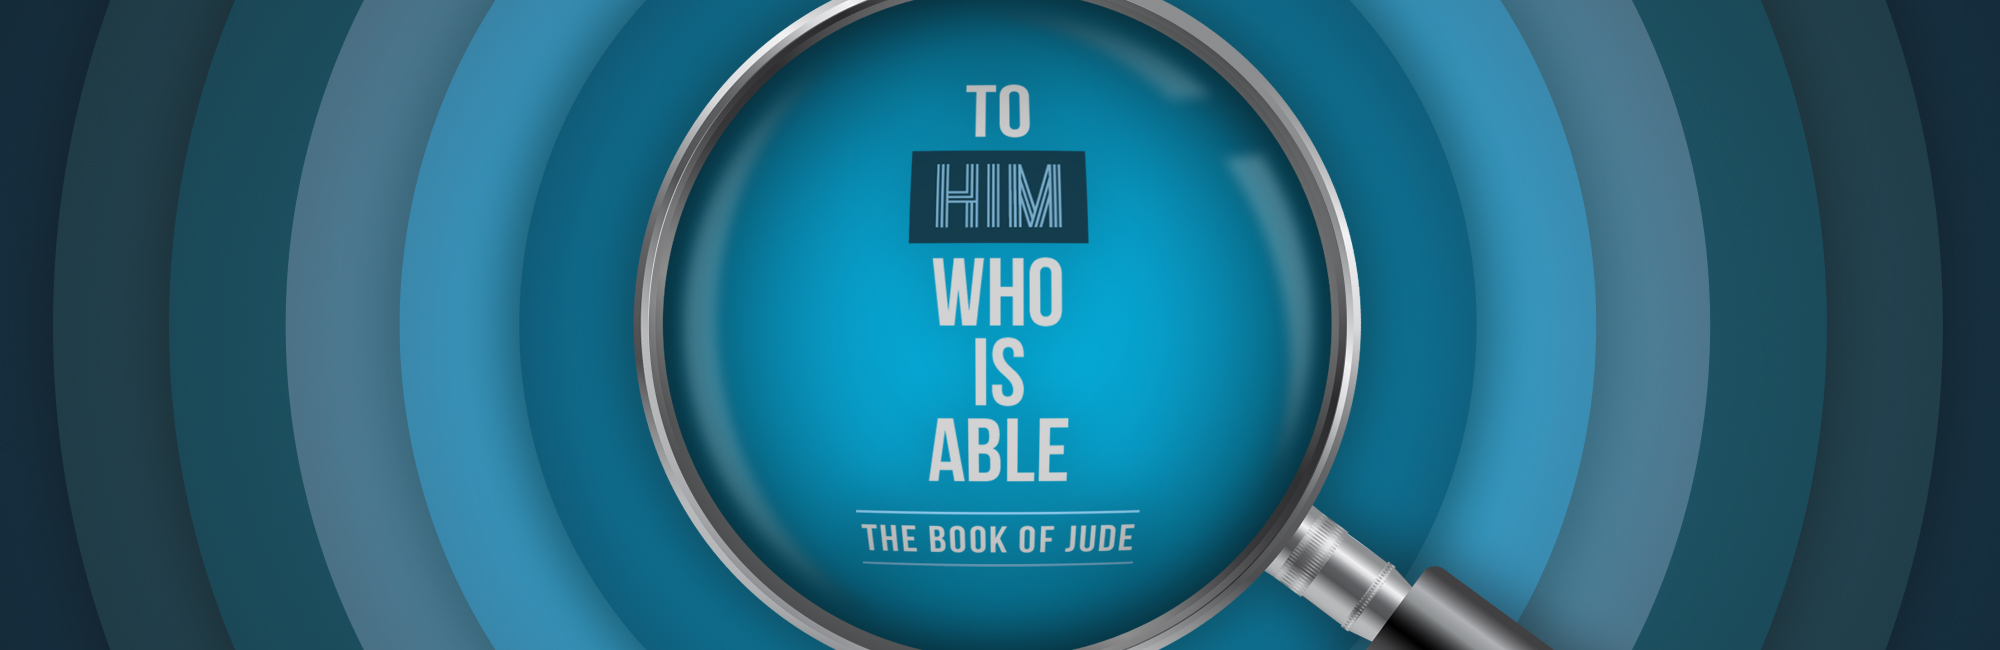 To Him Who is Able - Sermon Web Header